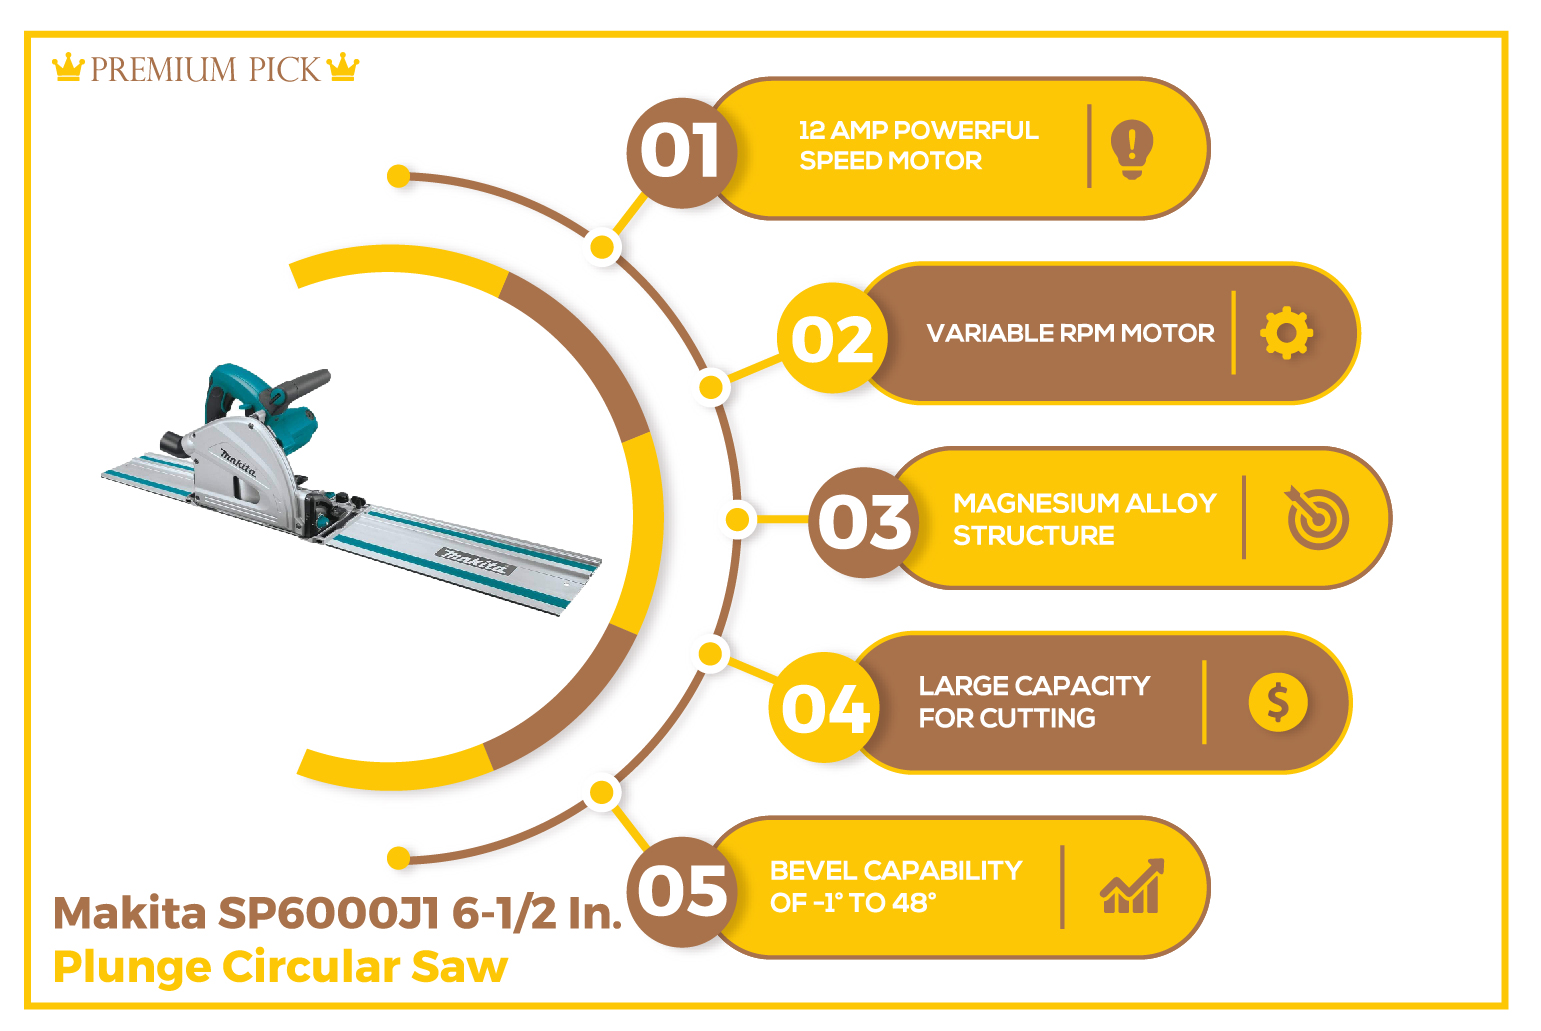 Makita SP6000J1 6-12 In - Best Budget Circular Saw Inforgraphic